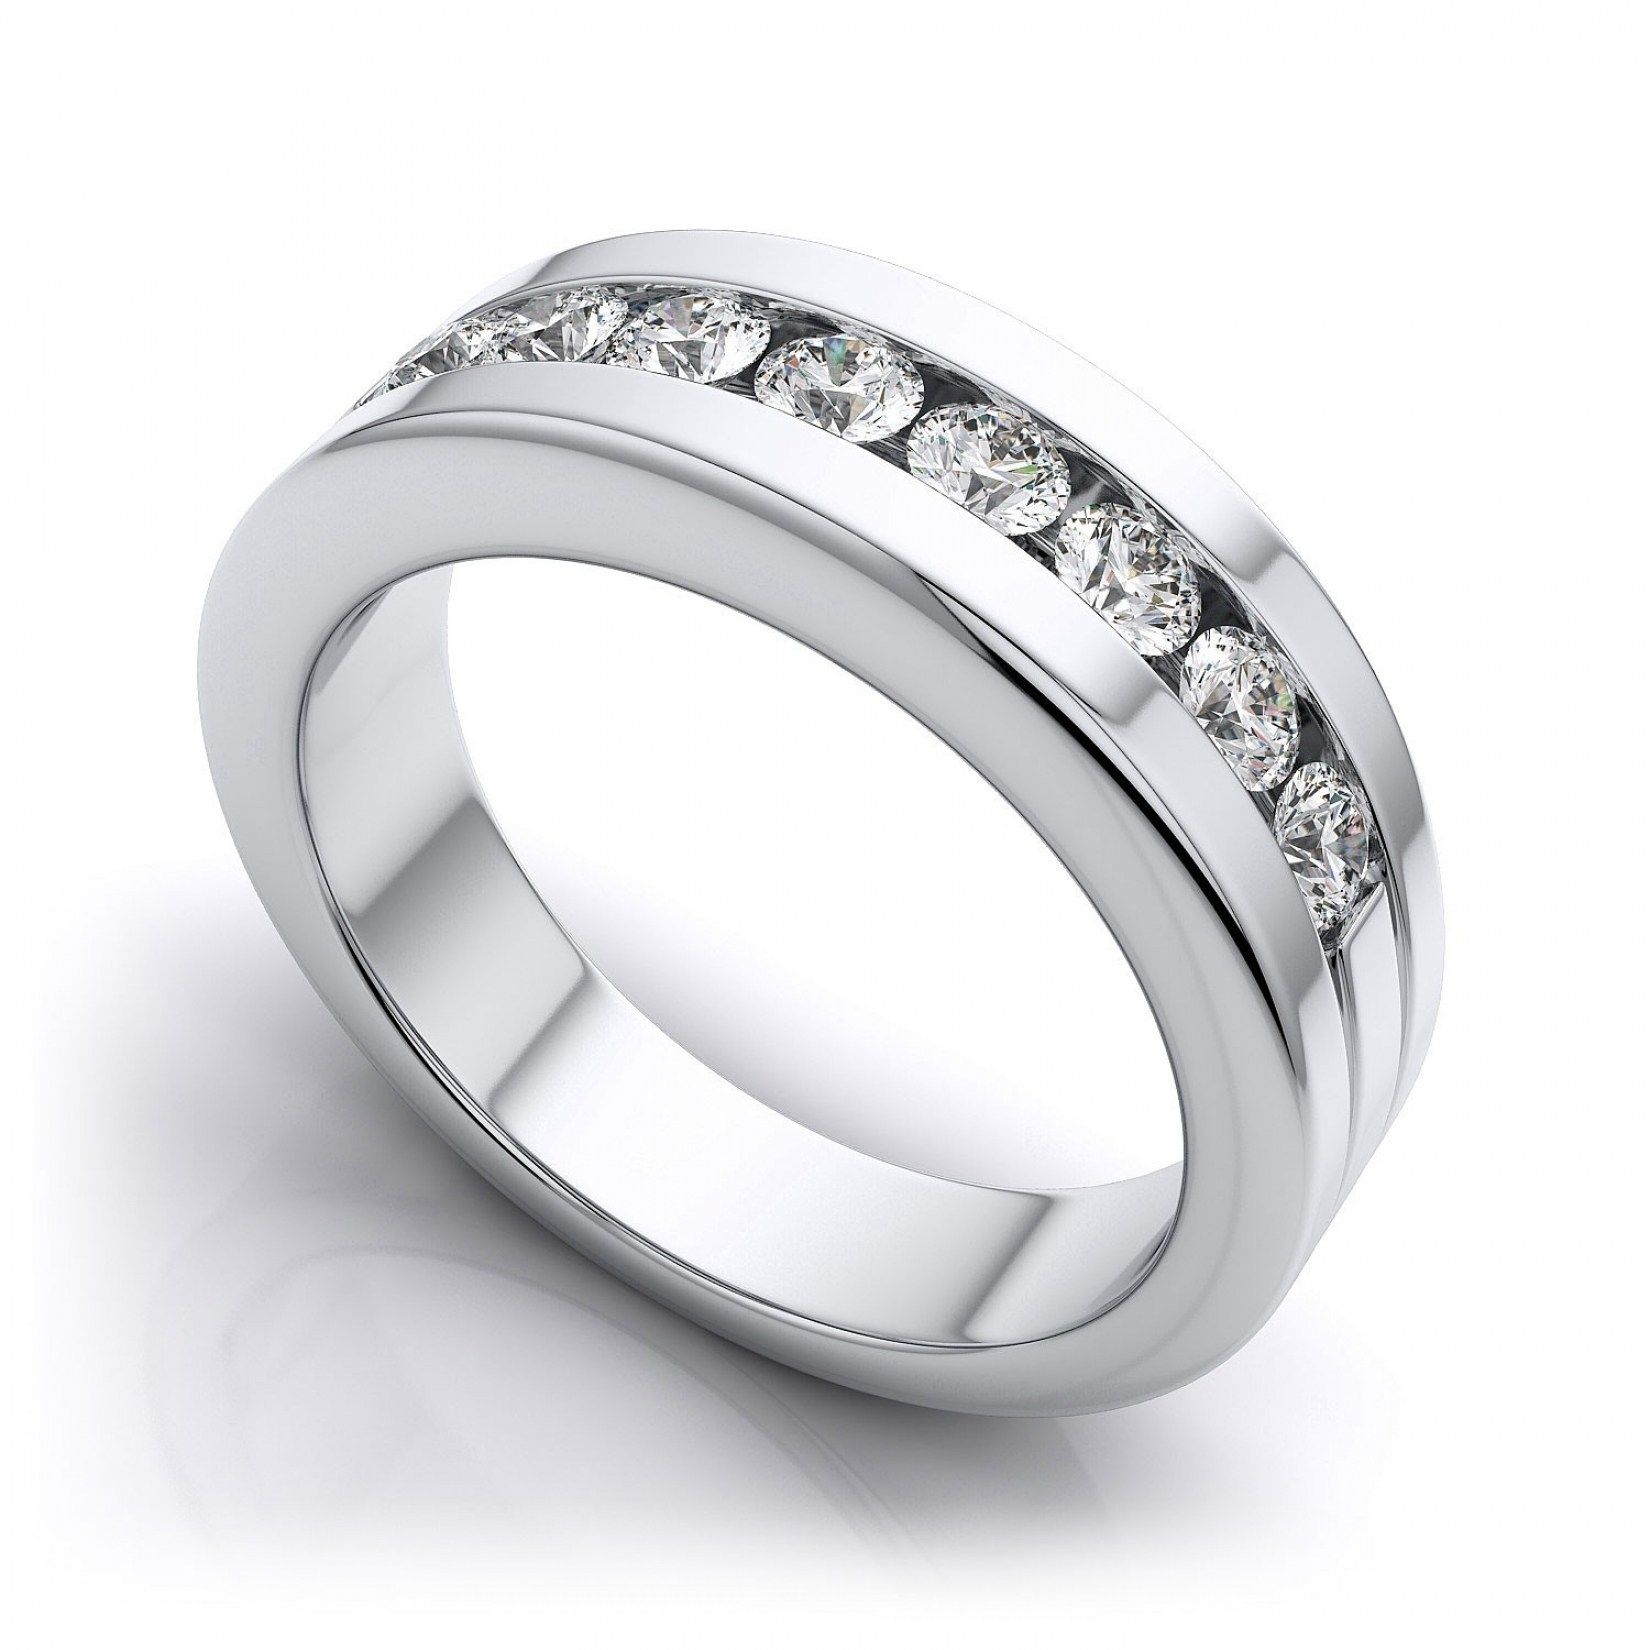 30 best platinum wedding rings for couples - Platinum Wedding Rings For Her